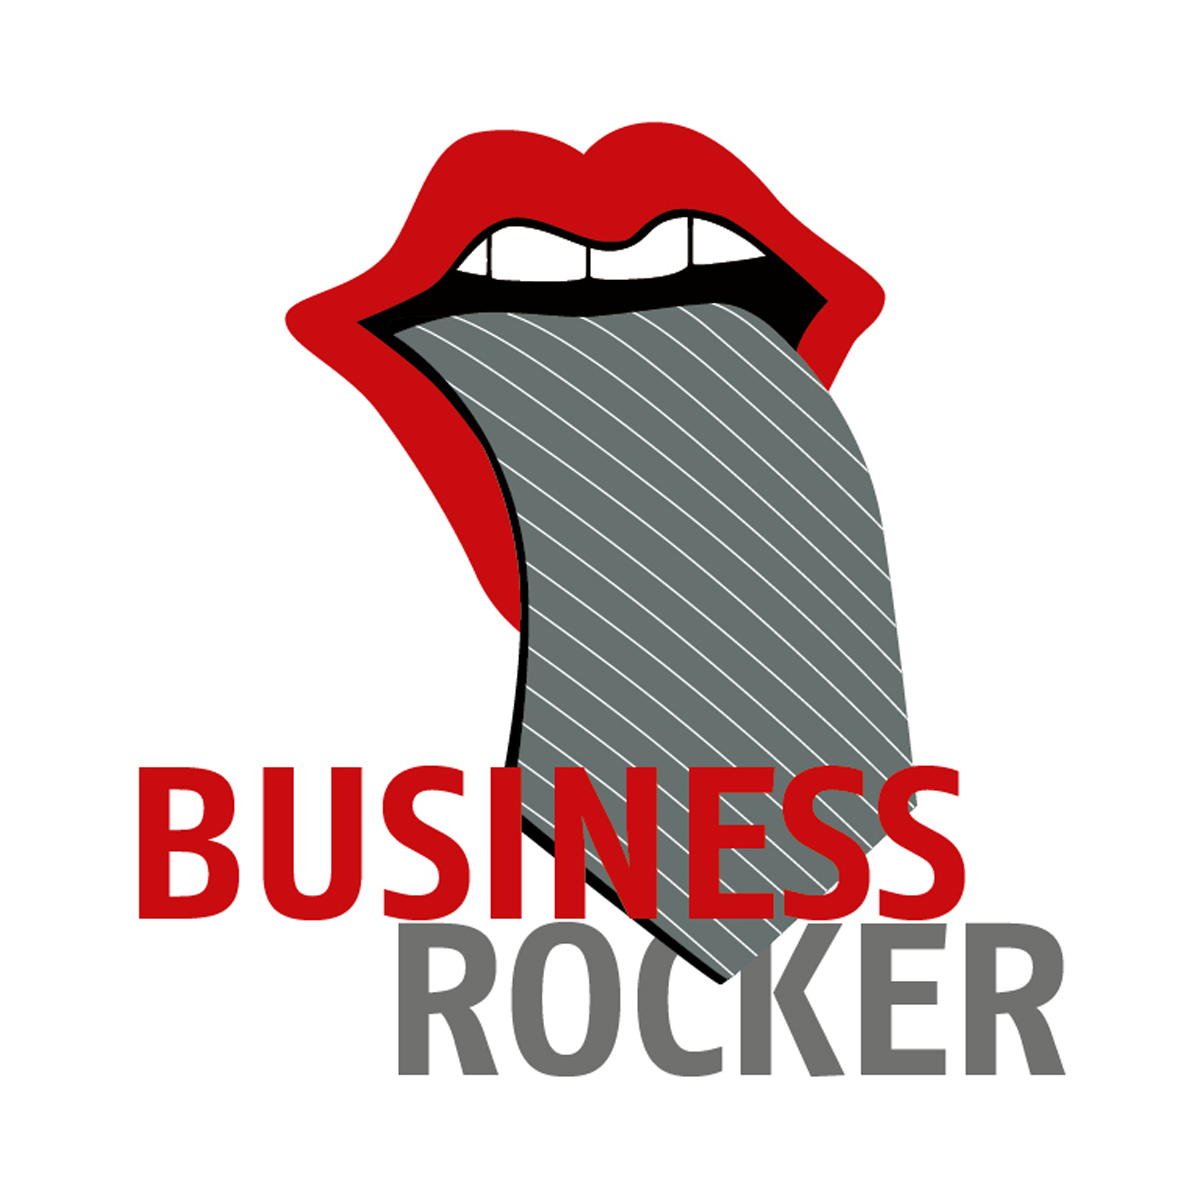 Business Rocker